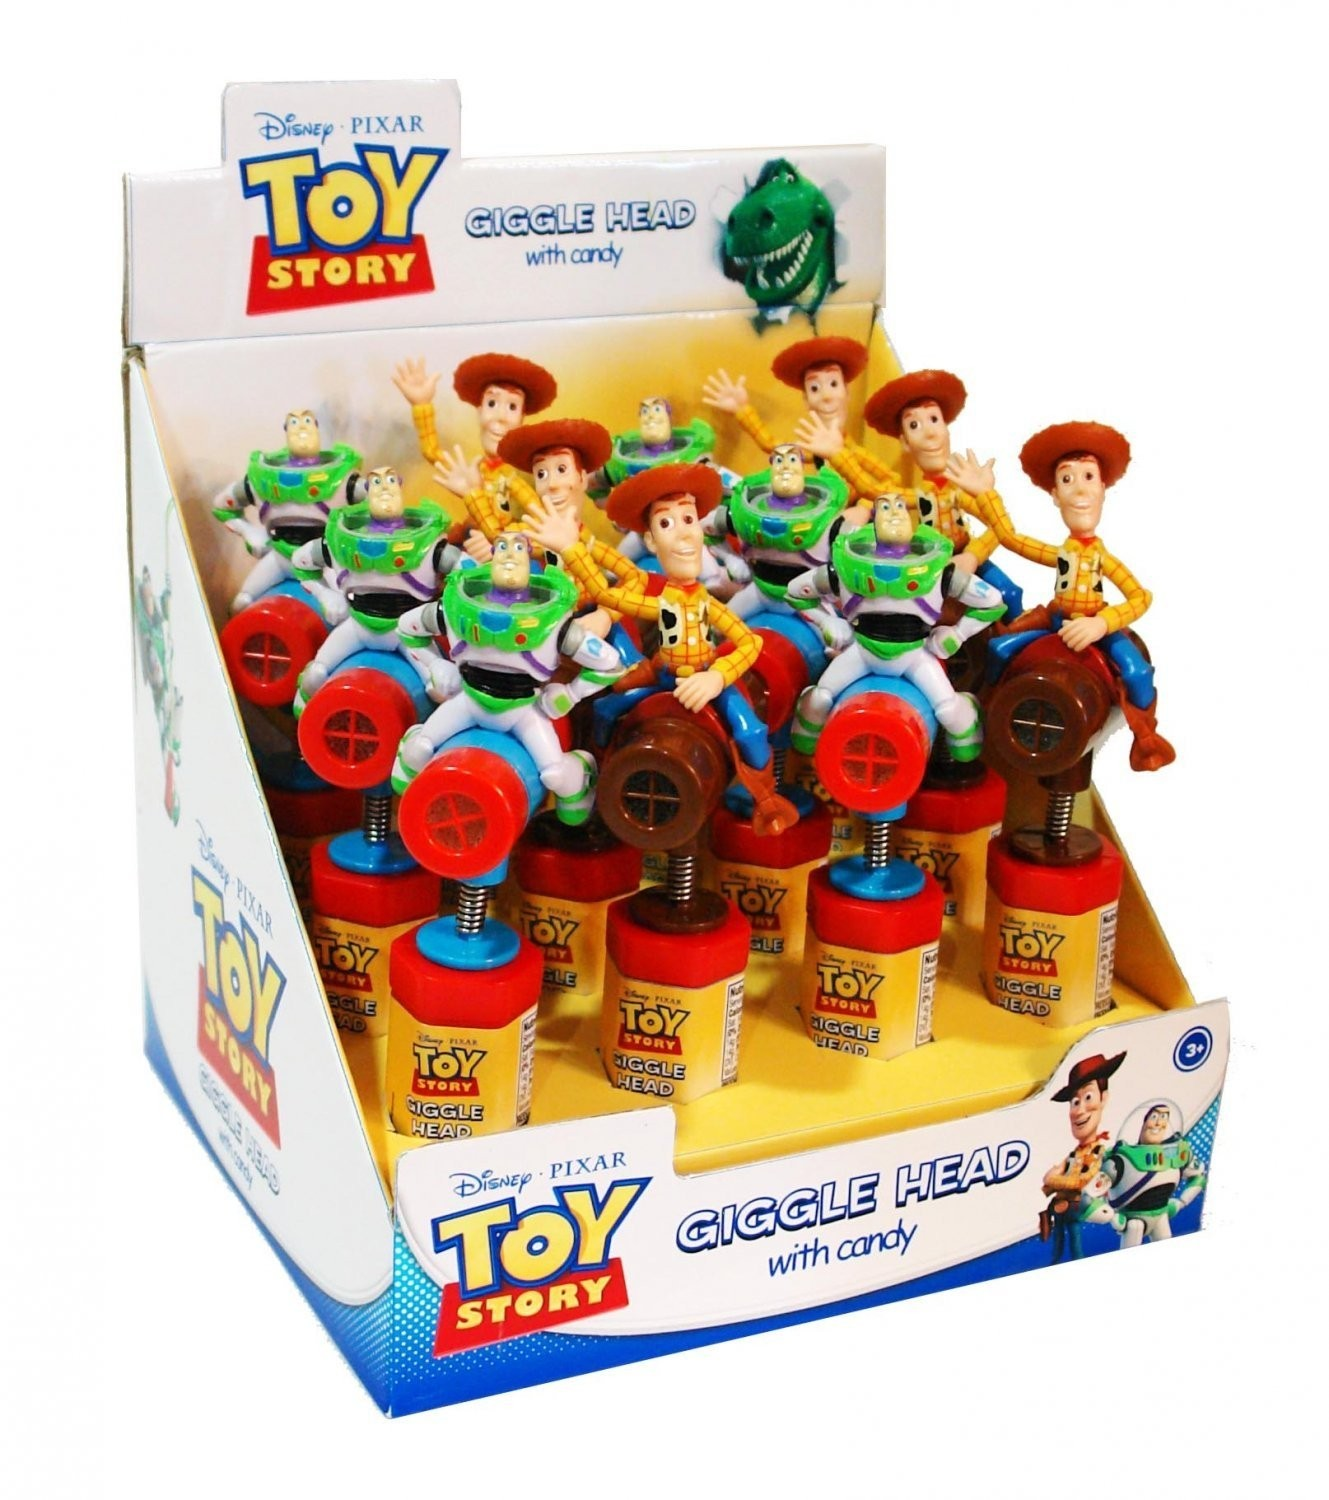 Disney ©Disney•Pixar Toy Story Giggle Head with candy